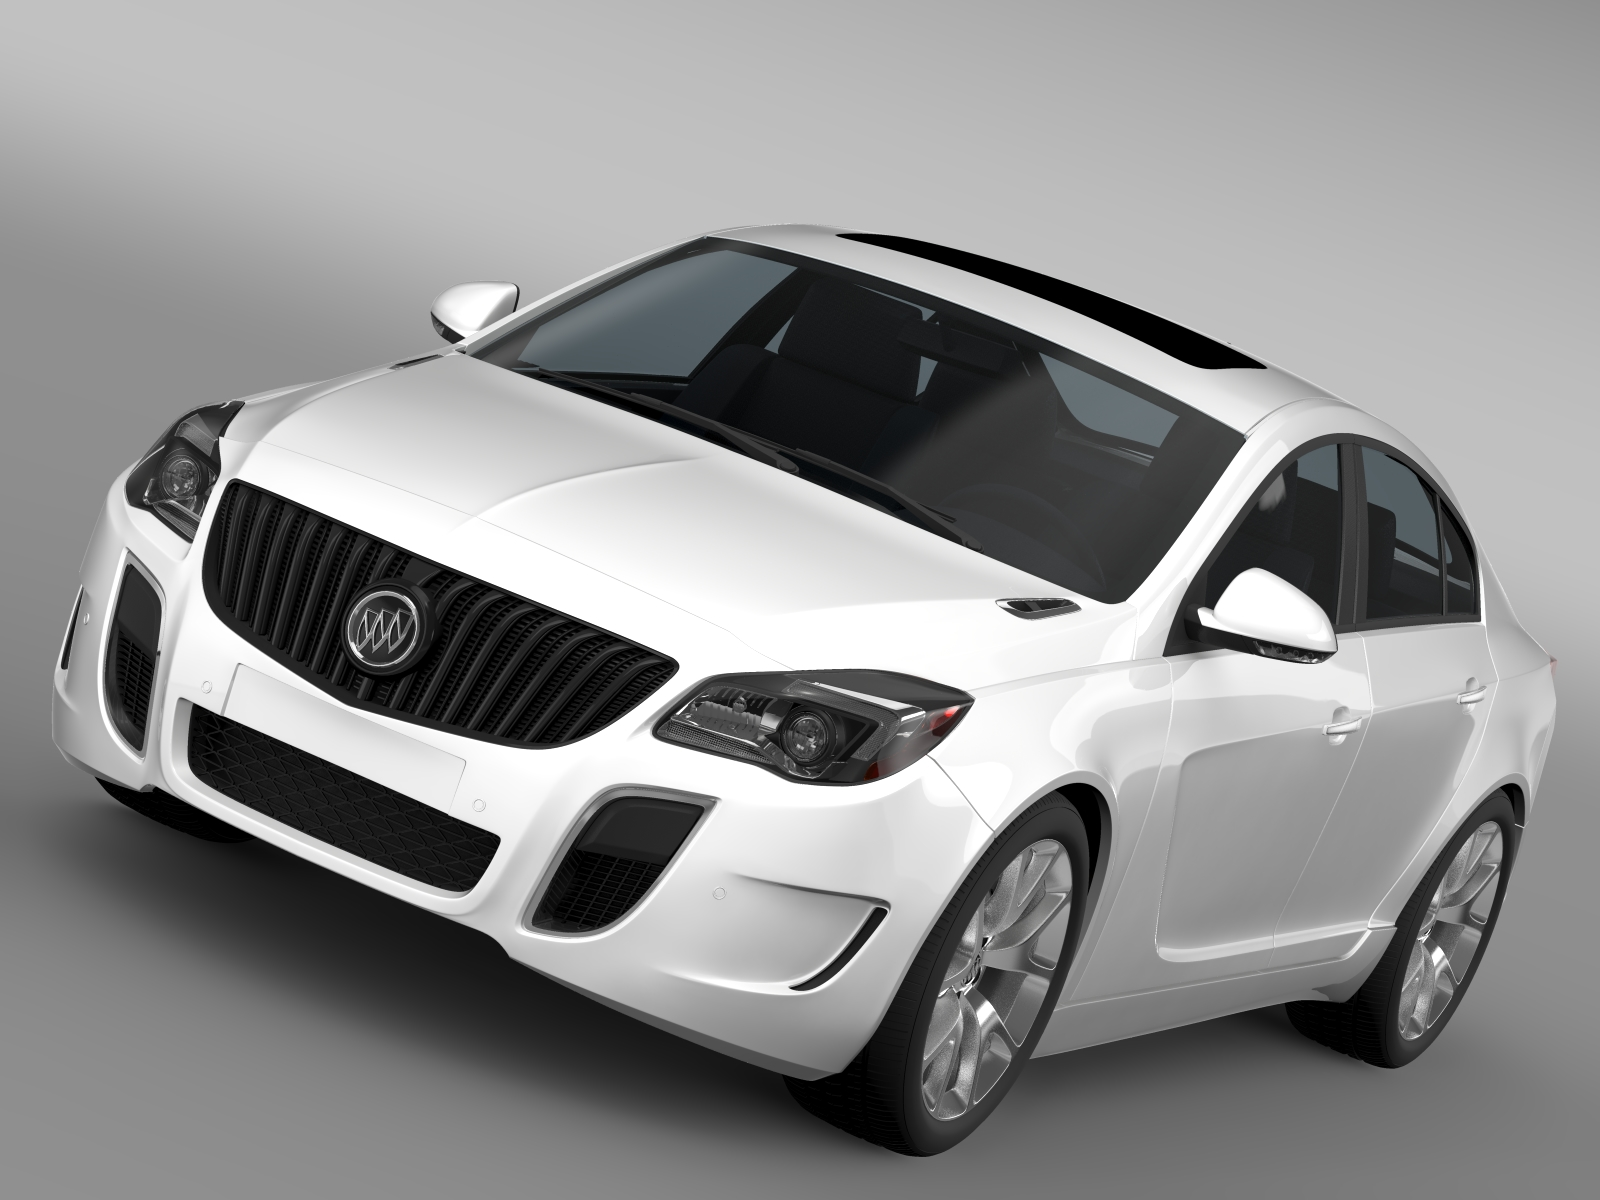 gúnaí buick regal gs 2015 3d model 3ds max fbx c4d le hrc xsi obj 215196